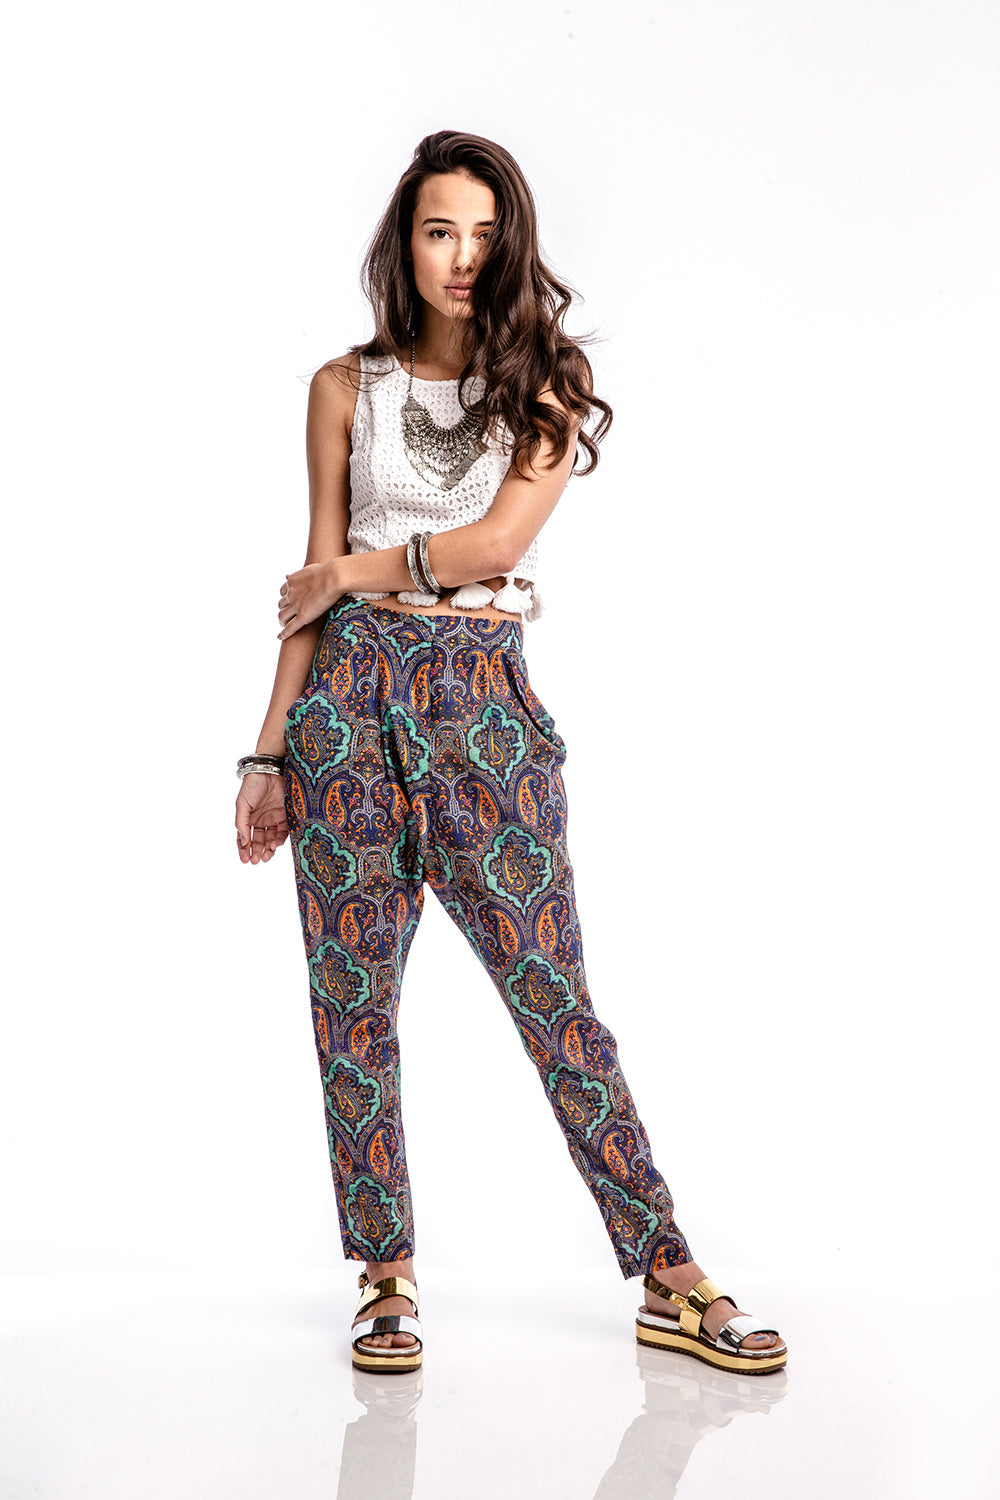 TOLA Kings Slouchy Pant - Blue